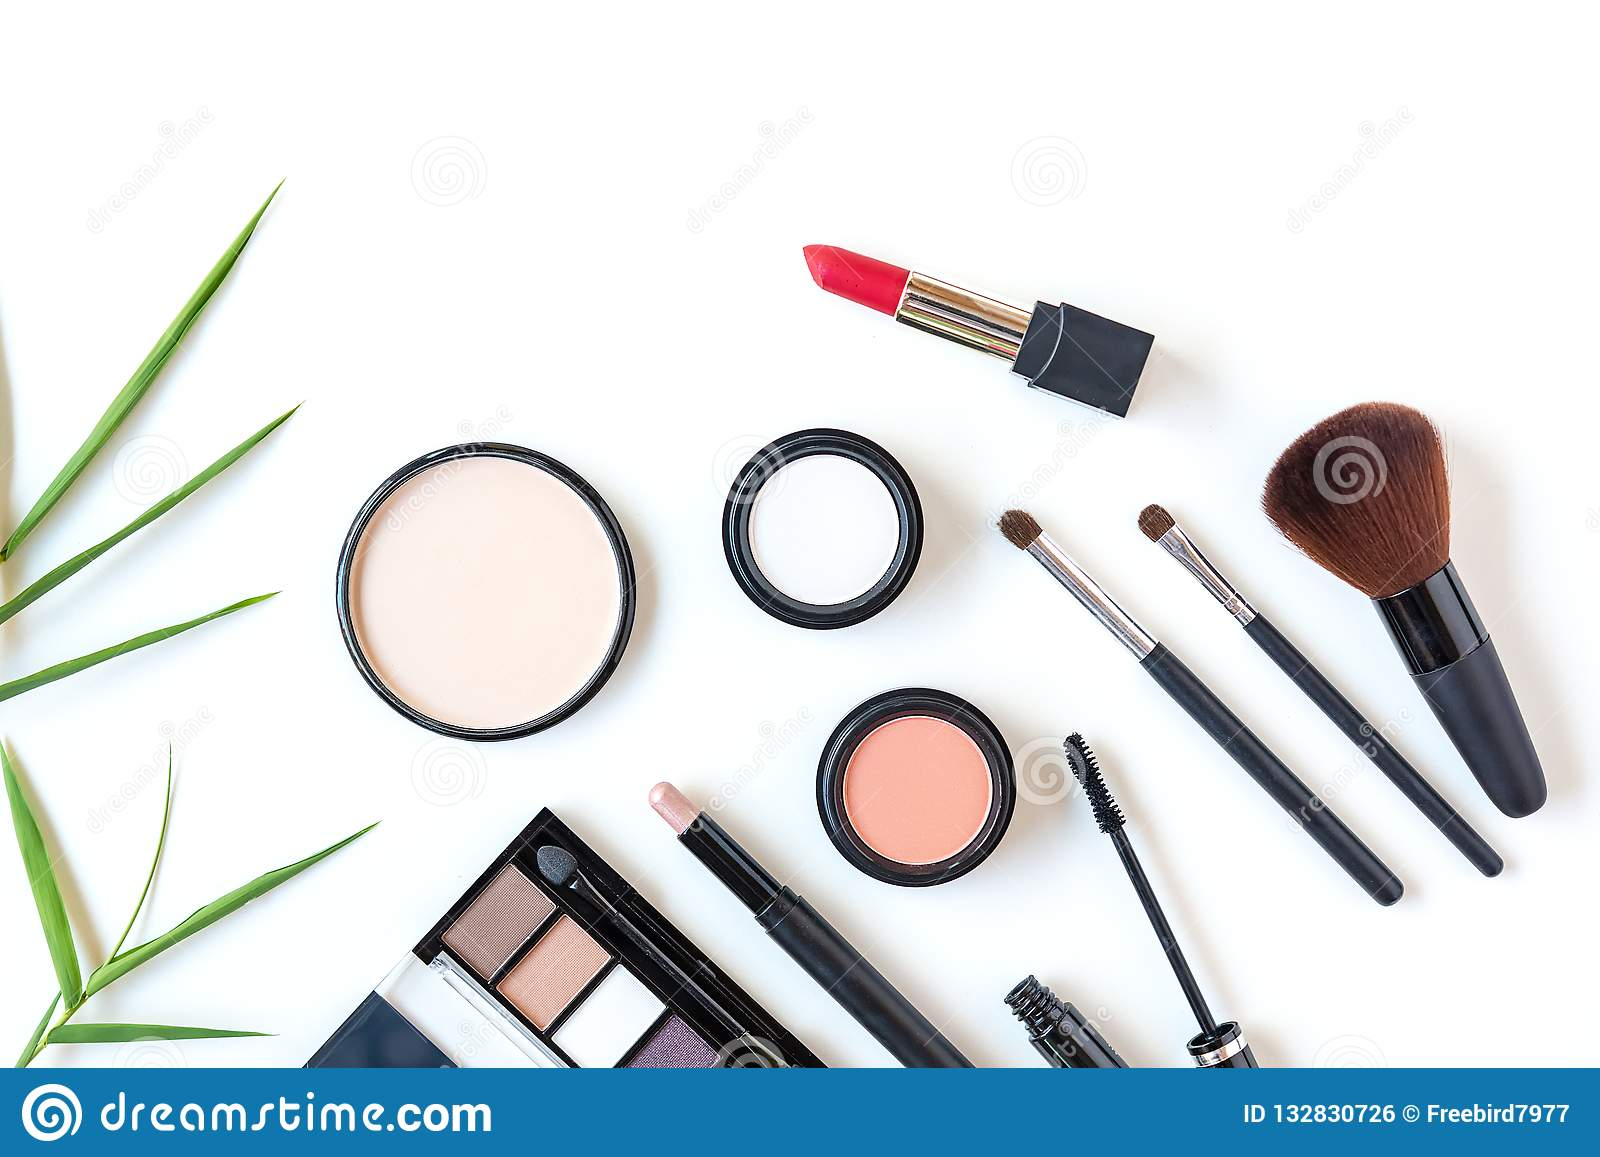 Makeup cosmetics tools background and beauty cosmetics, products and facial cosmetics package lipstick, eyeshadow on the white bac